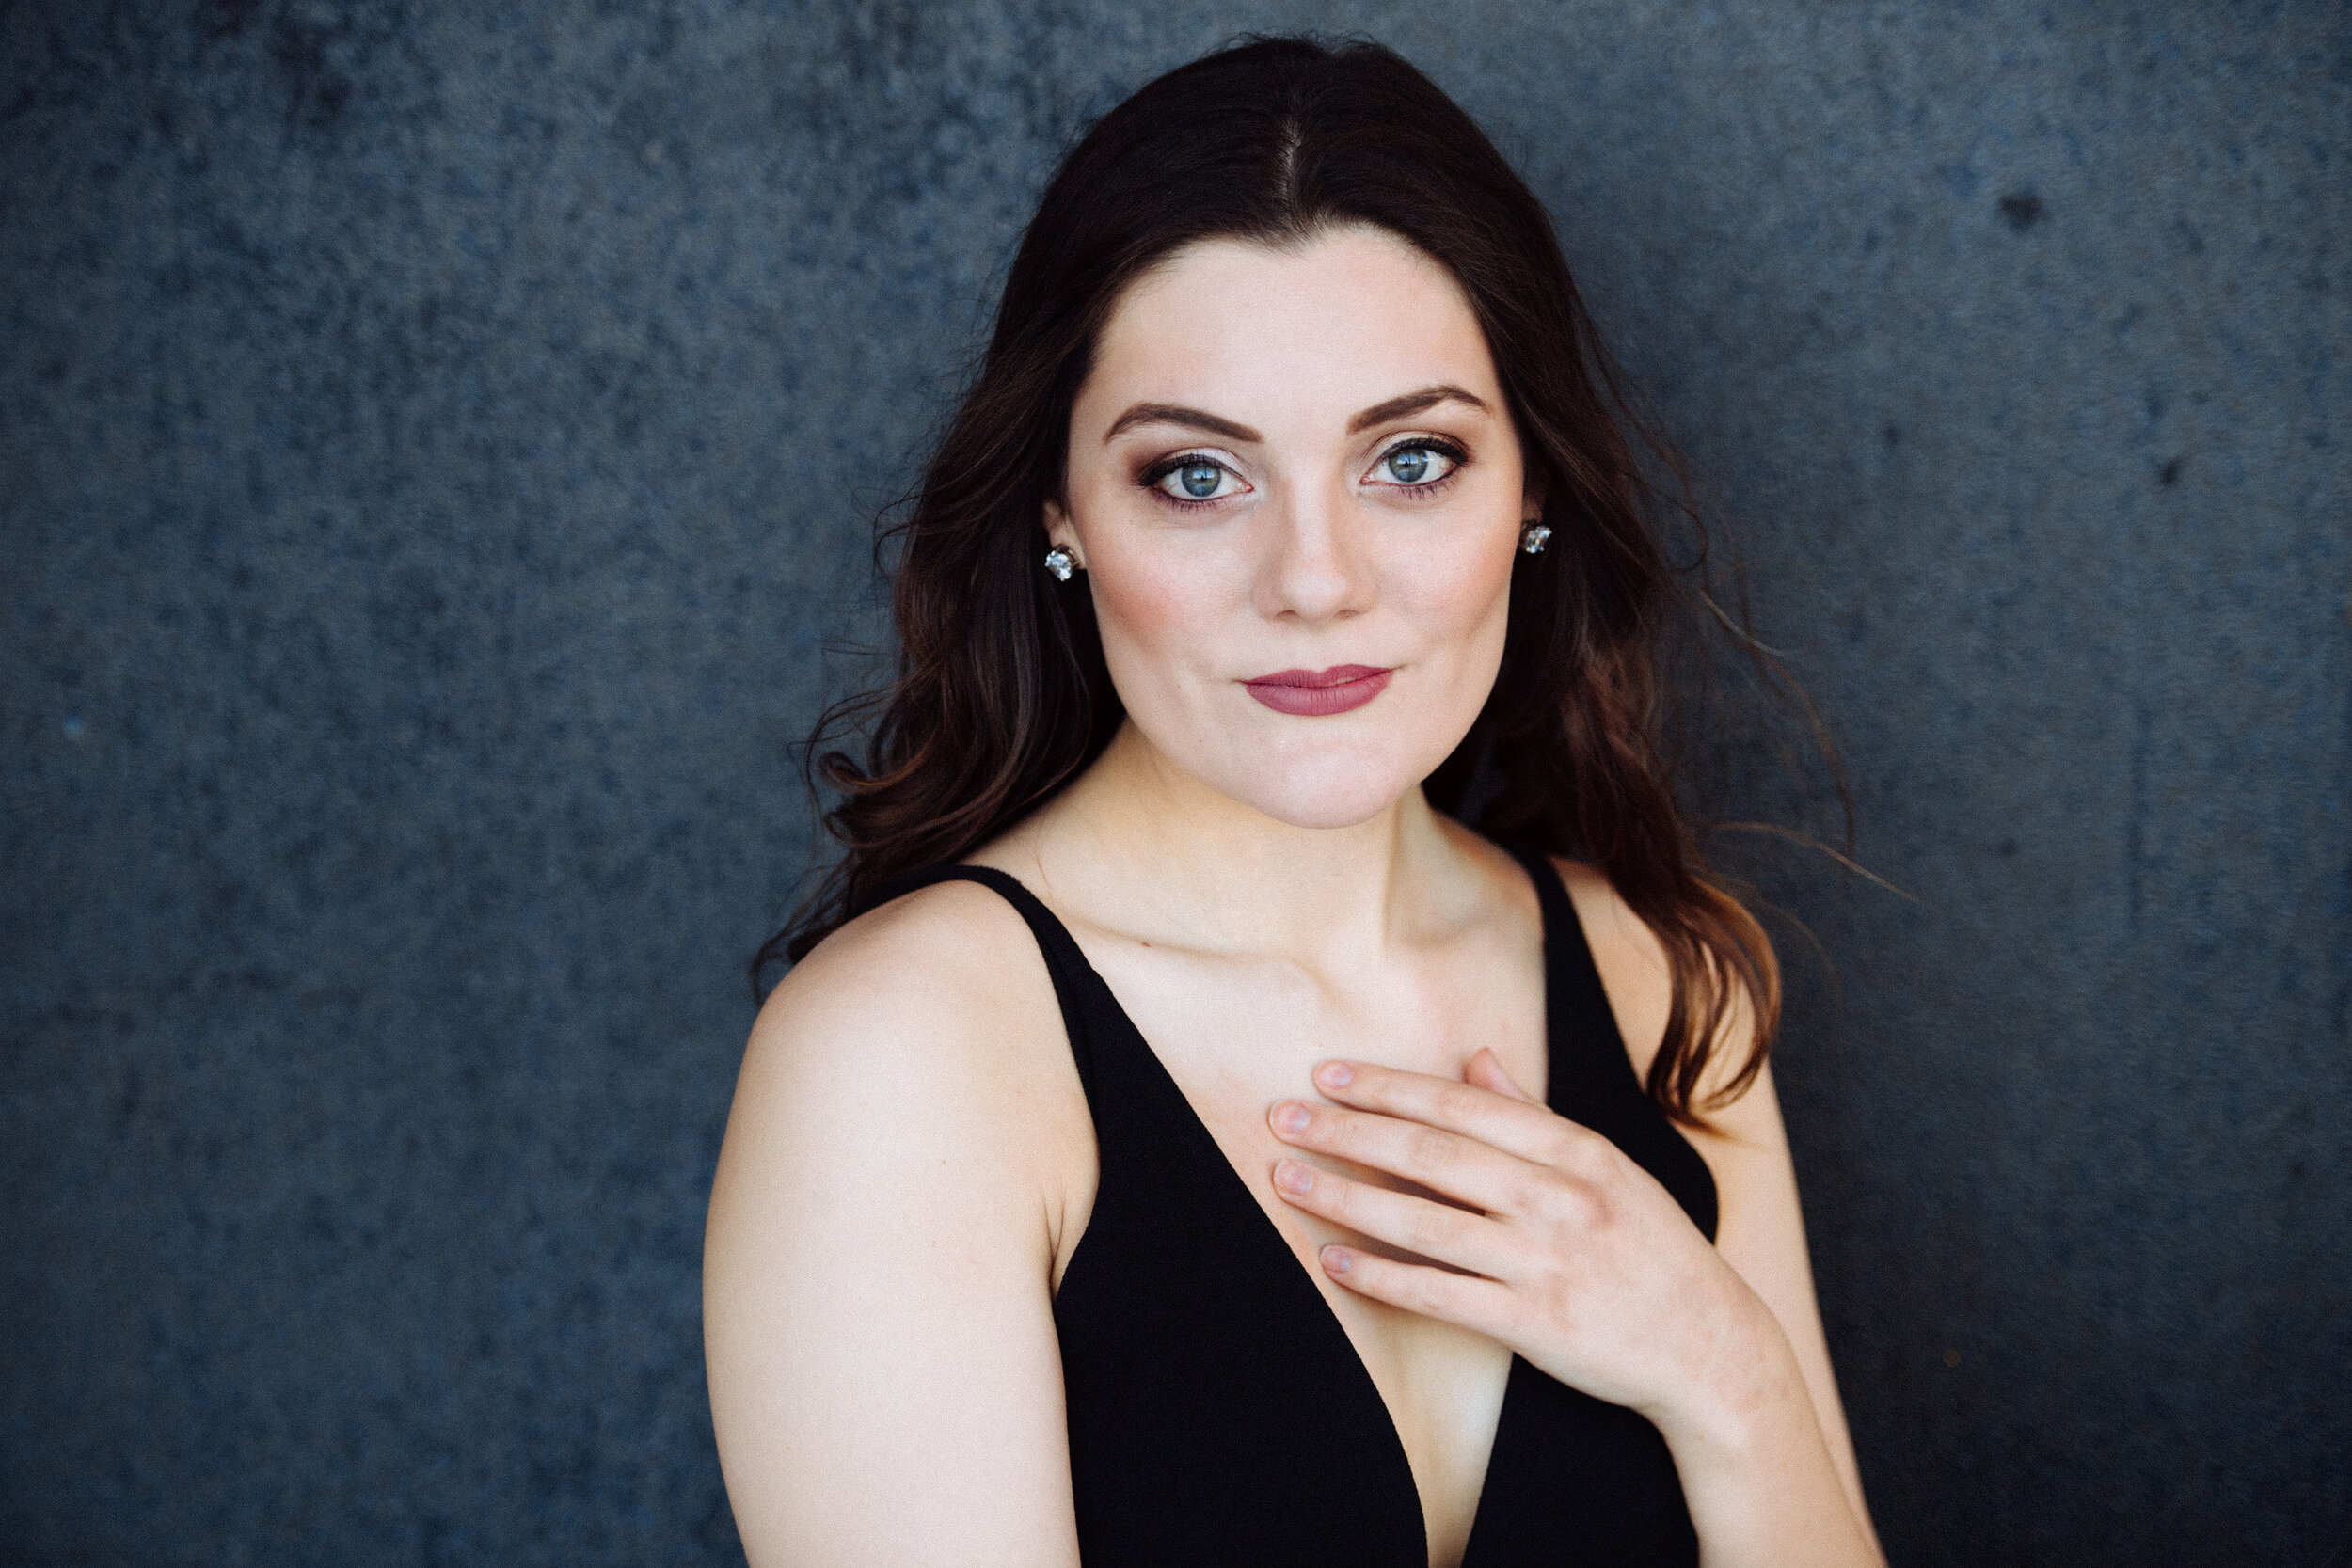 """Mezzo-soprano  Olivia Cosio , originally from San Francisco, CA, is a Master of Music student in Vocal Arts at The Juilliard School. She will tour to Europe with Juilliard this coming June, performing Second Witch in Purcell's """"Dido and Aeneas"""" with performances at London's Holland Park and Versaille's Opéra Royal. She will be a mezzo-soprano fellow at Tanglewood this summer where, last year, she performed Bach cantatas conducted by John Harbison, the world premiere of Michael Gandolfi's """"In America"""", and the role of Susie in Bernstein's """"A Quiet Place"""". Olivia received her Bachelor of Music degree from the Oberlin Conservatory, where she performed Cherubino in Mozart's """"Le nozze di Figaro"""", Dorothée in Massenet's """"Cendrillon"""", and Bradamante in Handel's """"Alcina"""". Olivia has worked with world-renowned artists such as Dawn Upshaw, Marilyn Horne, Isabel Leonard, and Stephanie Blythe. In addition to her vocal studies, Olivia is also an experienced educator, having held teaching fellowships with both the Breakthrough Collaborative and Juilliard's Music Advancement Program."""